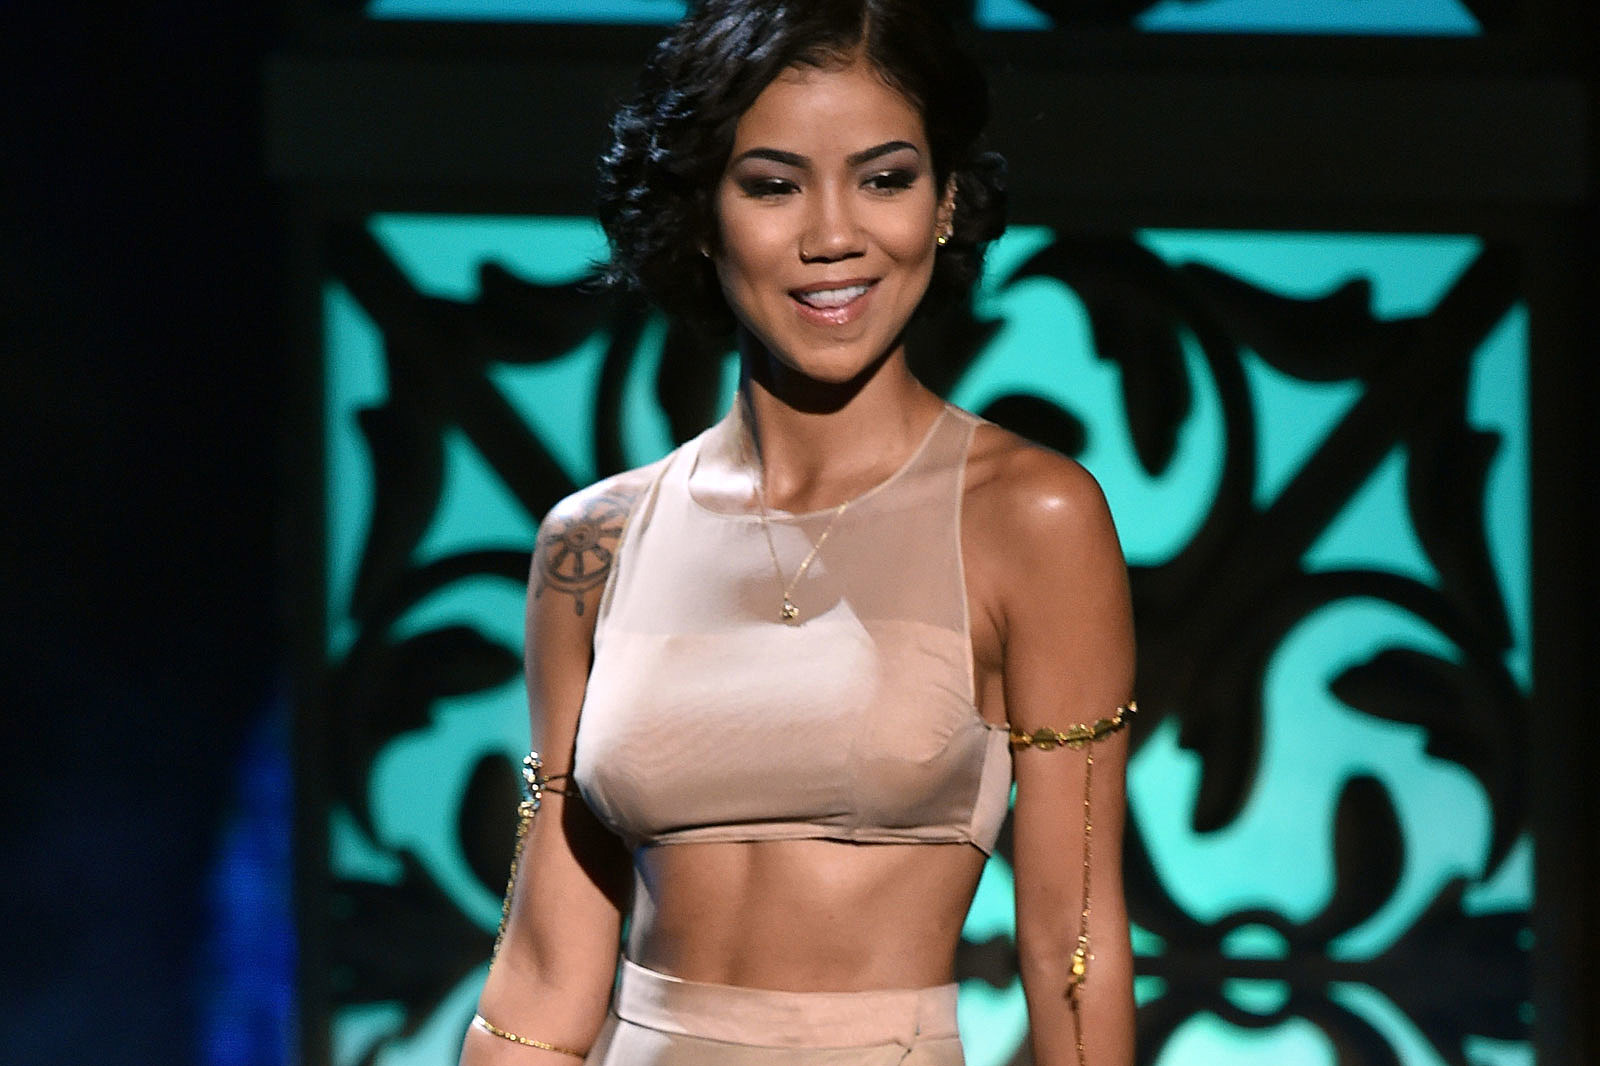 TheFappening: Jhene Aiko Nude